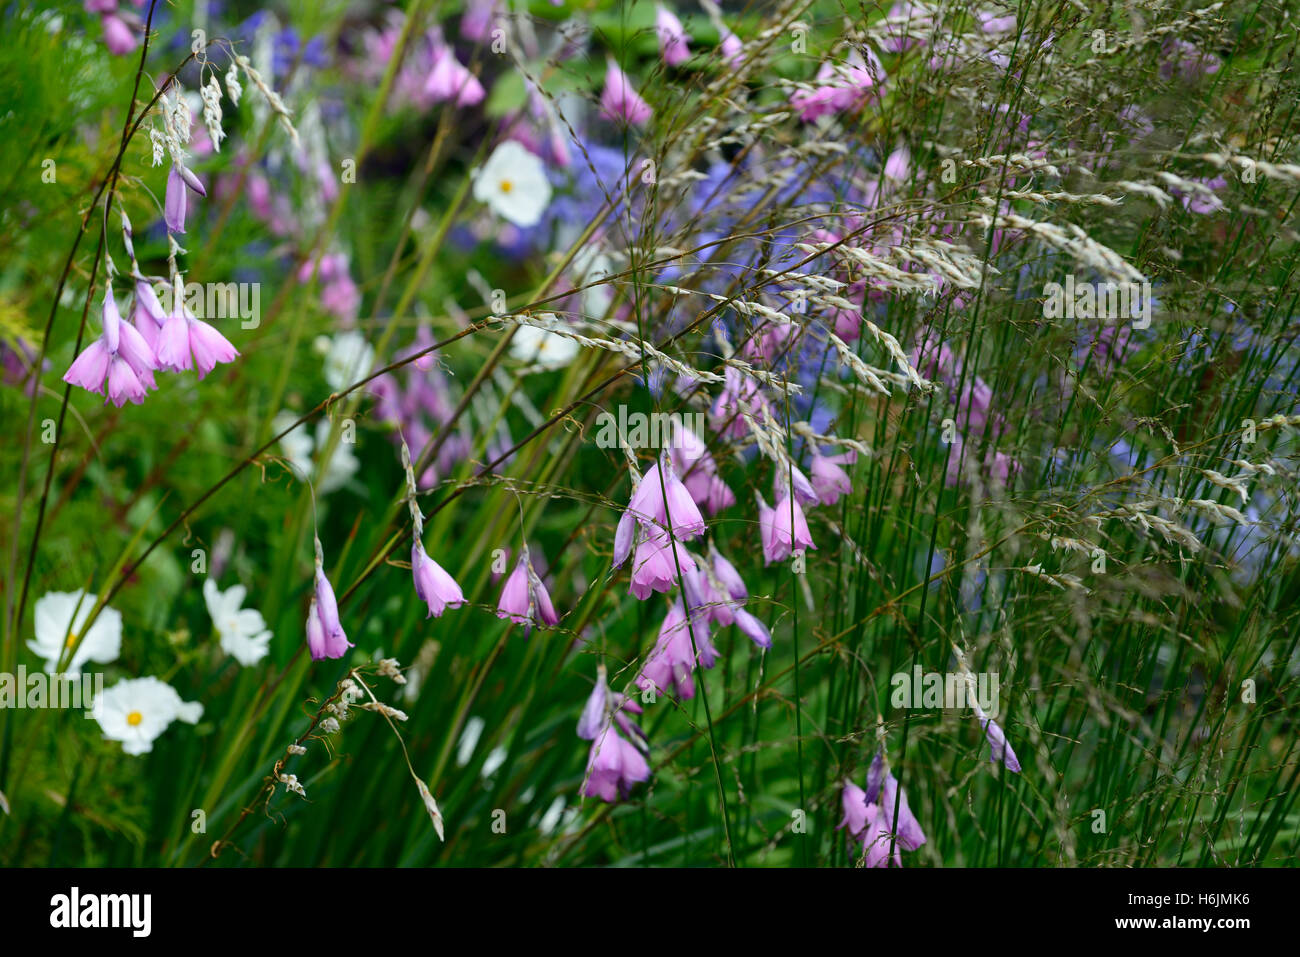 Dierama pulcherrimum closeup pink purple petals flowers perennials dierama pulcherrimum closeup pink purple petals flowers perennials arching dangling hanging bell shaped angels fishing rods mightylinksfo